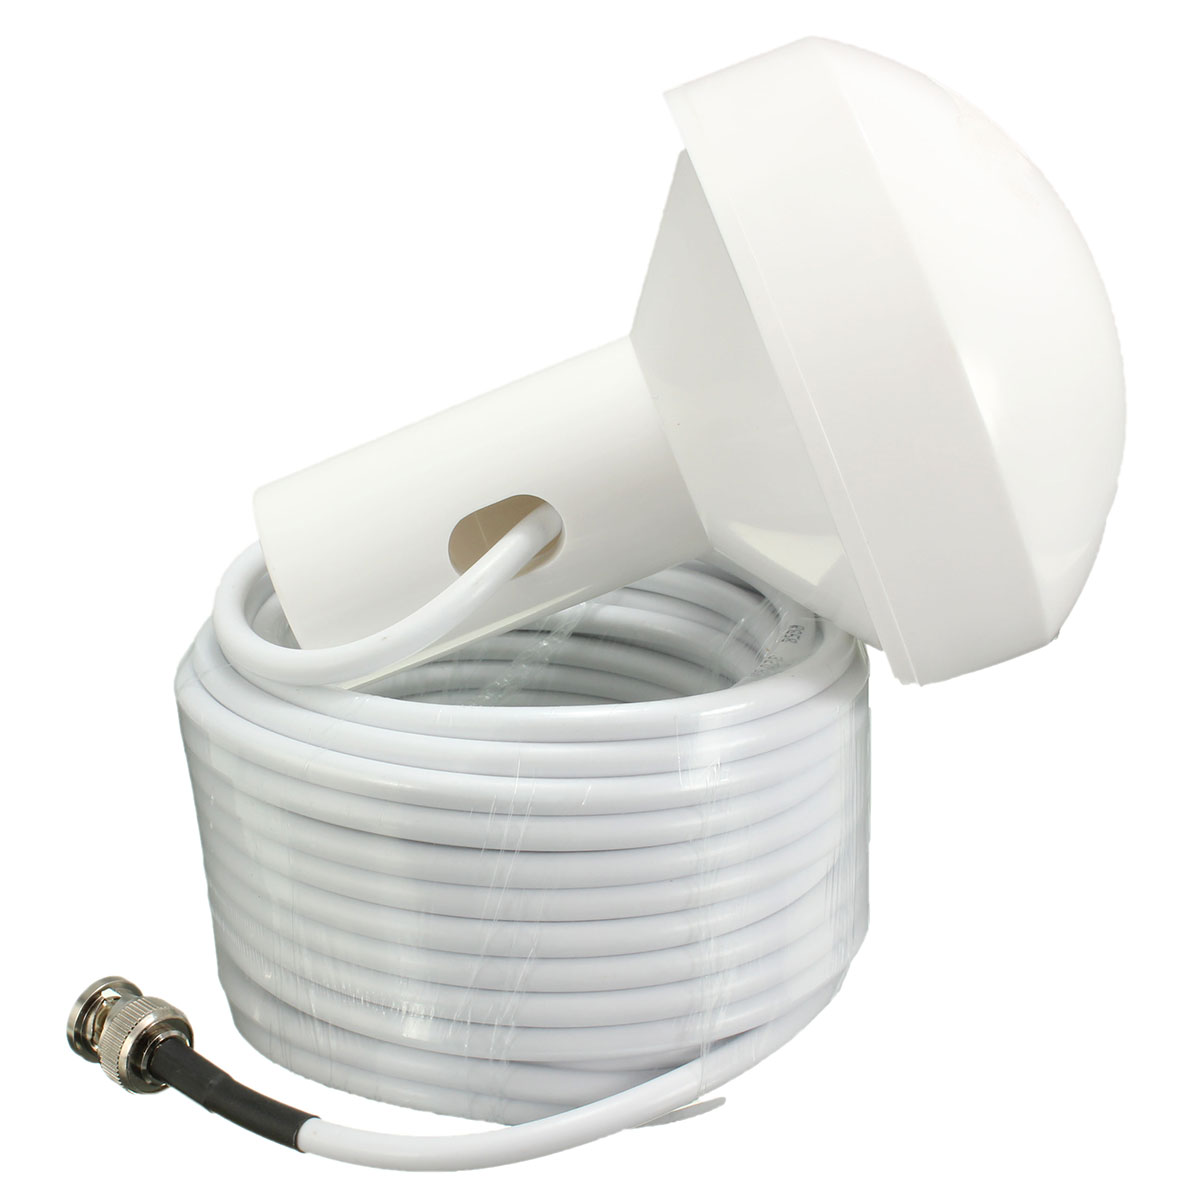 GPS Active Marine Navigation Antenna 10 Meters